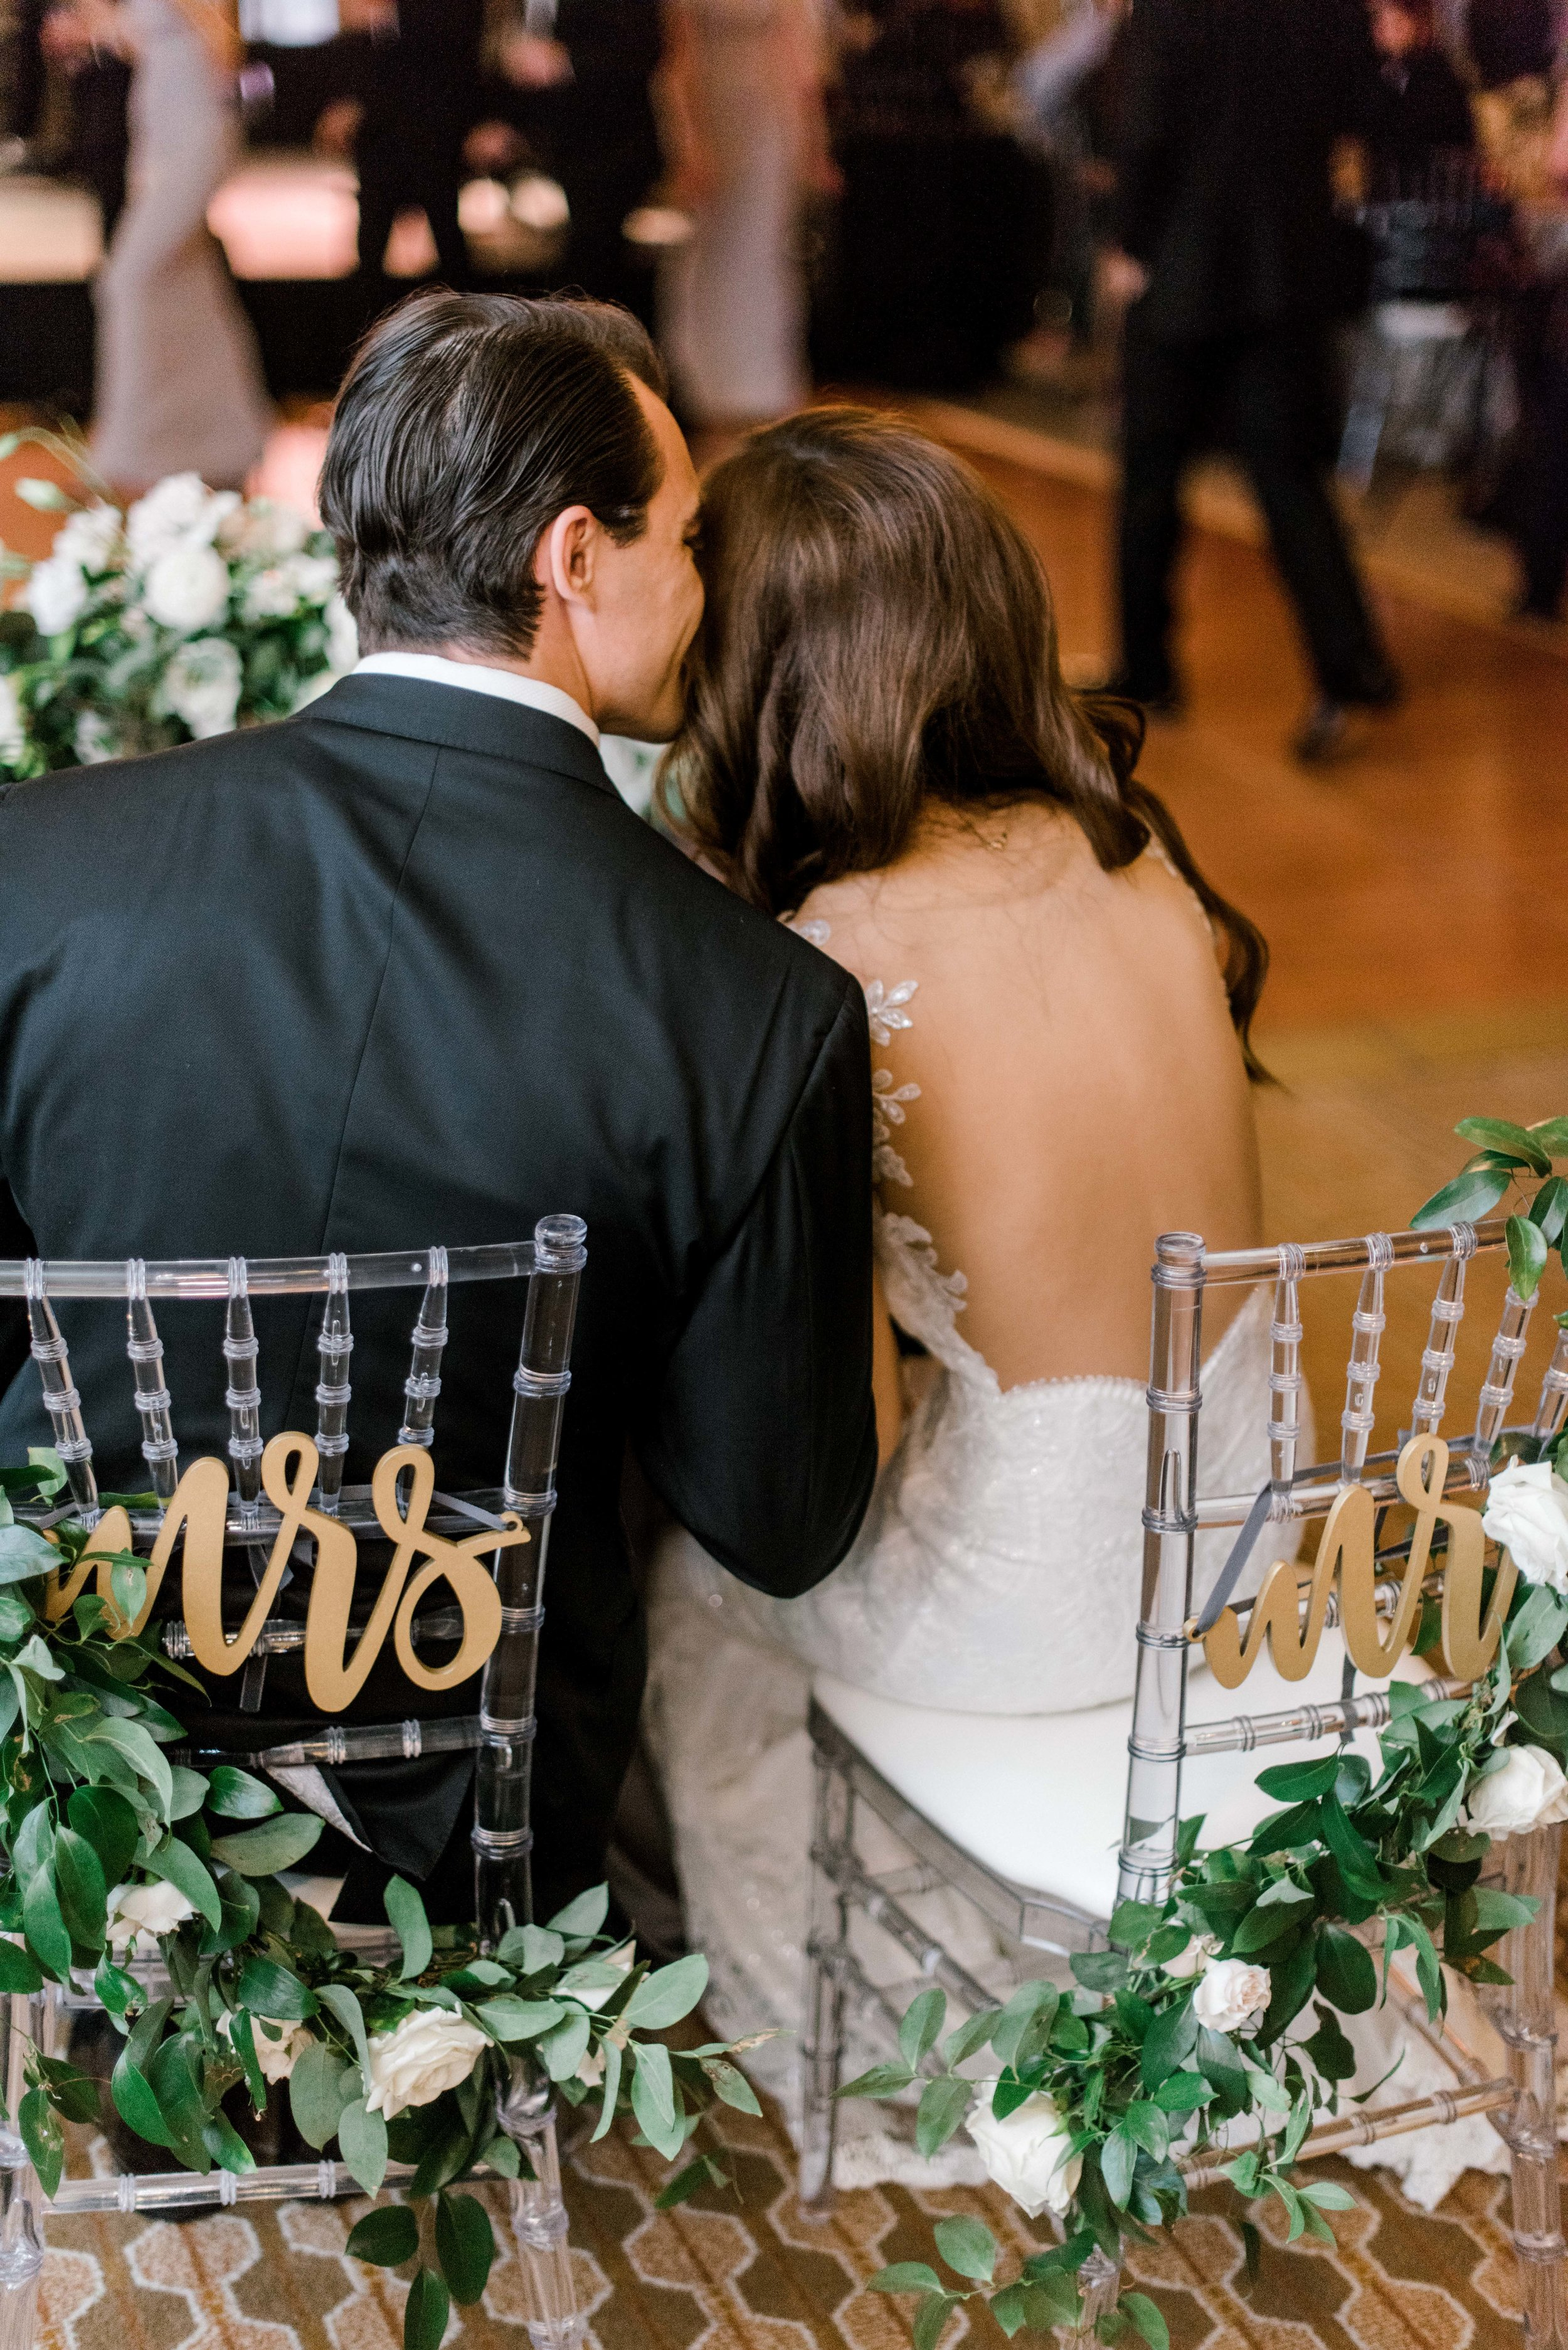 wedding-details-photography-dana-fernandez-reception-four-seasons-mr-mrs-chairs-calligraphy-garland-sweetheart-table-rose-white-blush-floral-greenery-by-maxit-flower-design-houston-texas